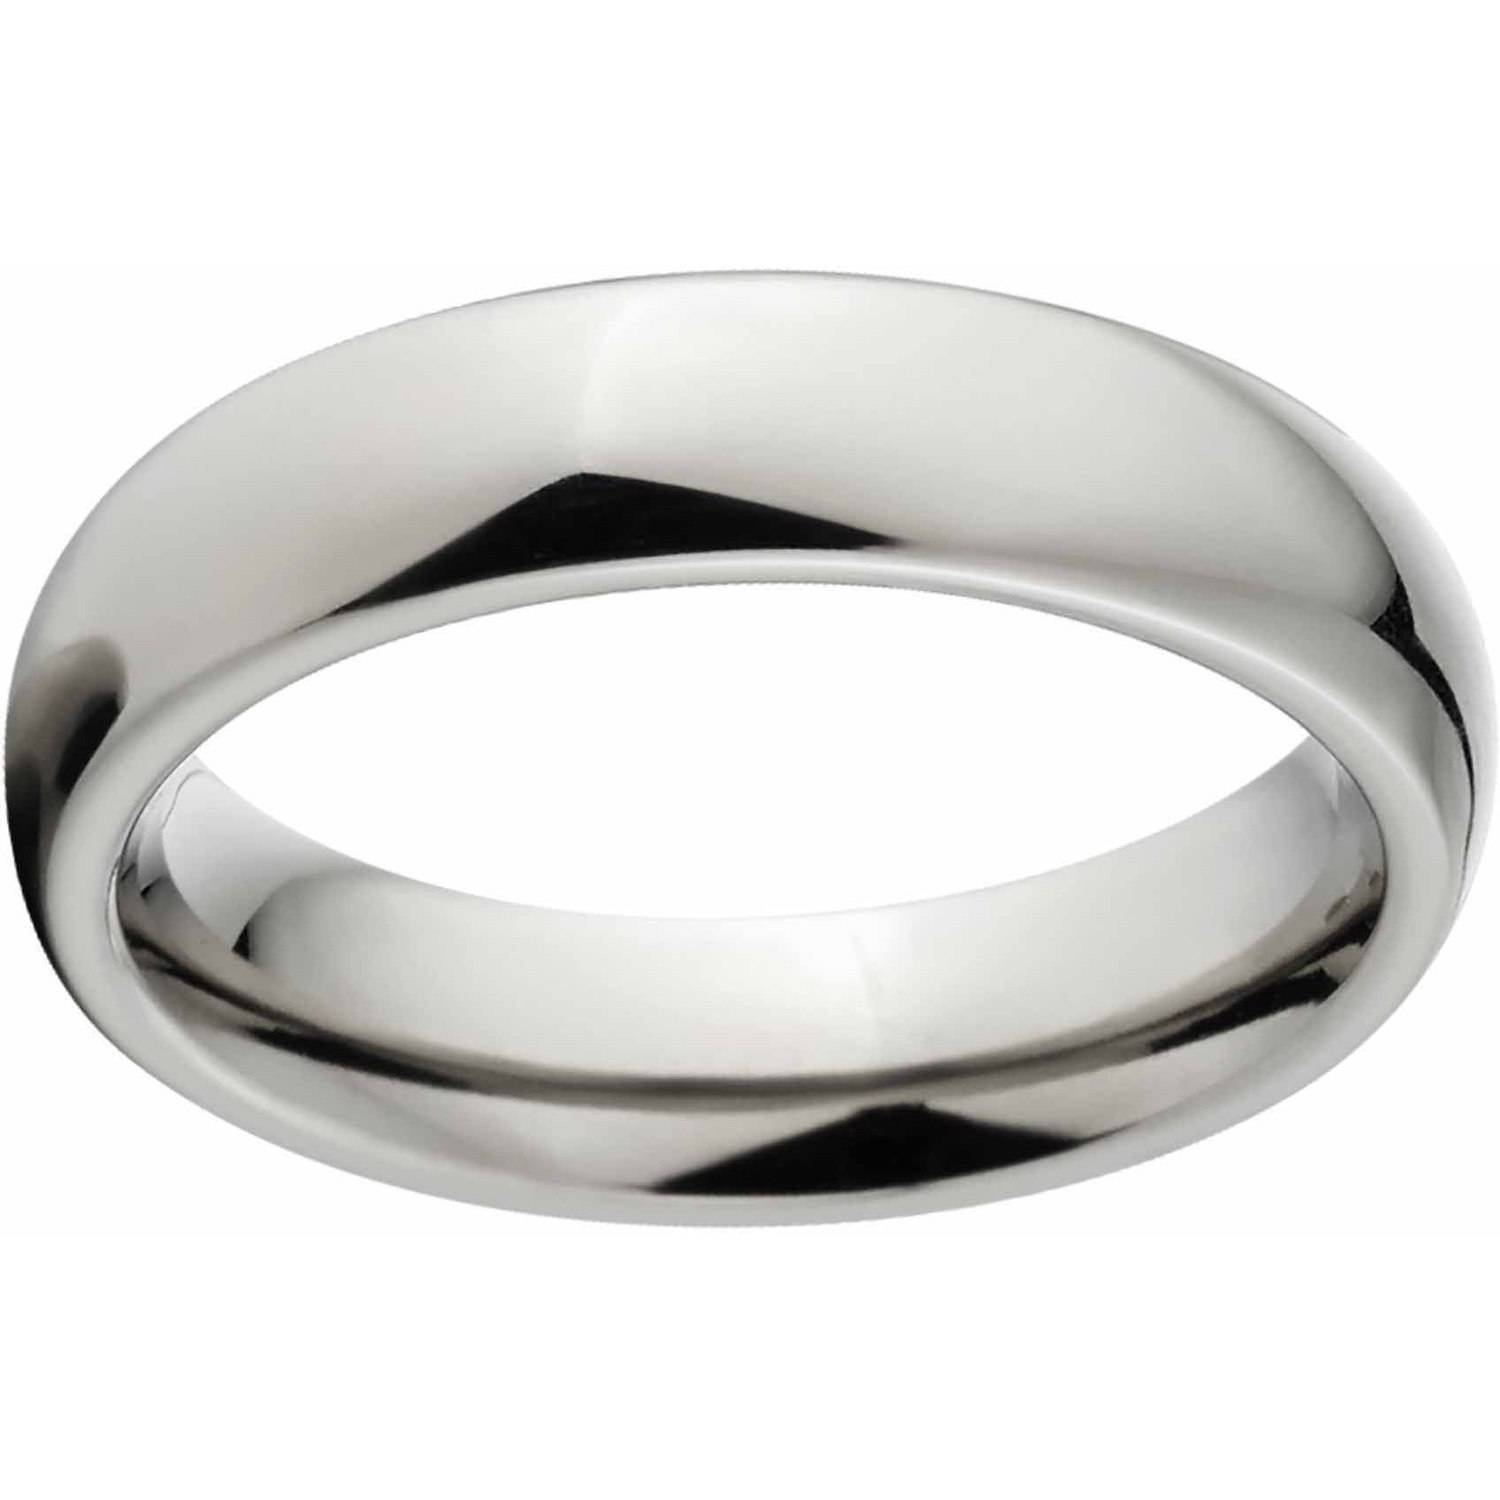 Polished 4Mm Titanium Wedding Band With Comfort Fit Design Within Titanium Wedding Bands (View 9 of 15)